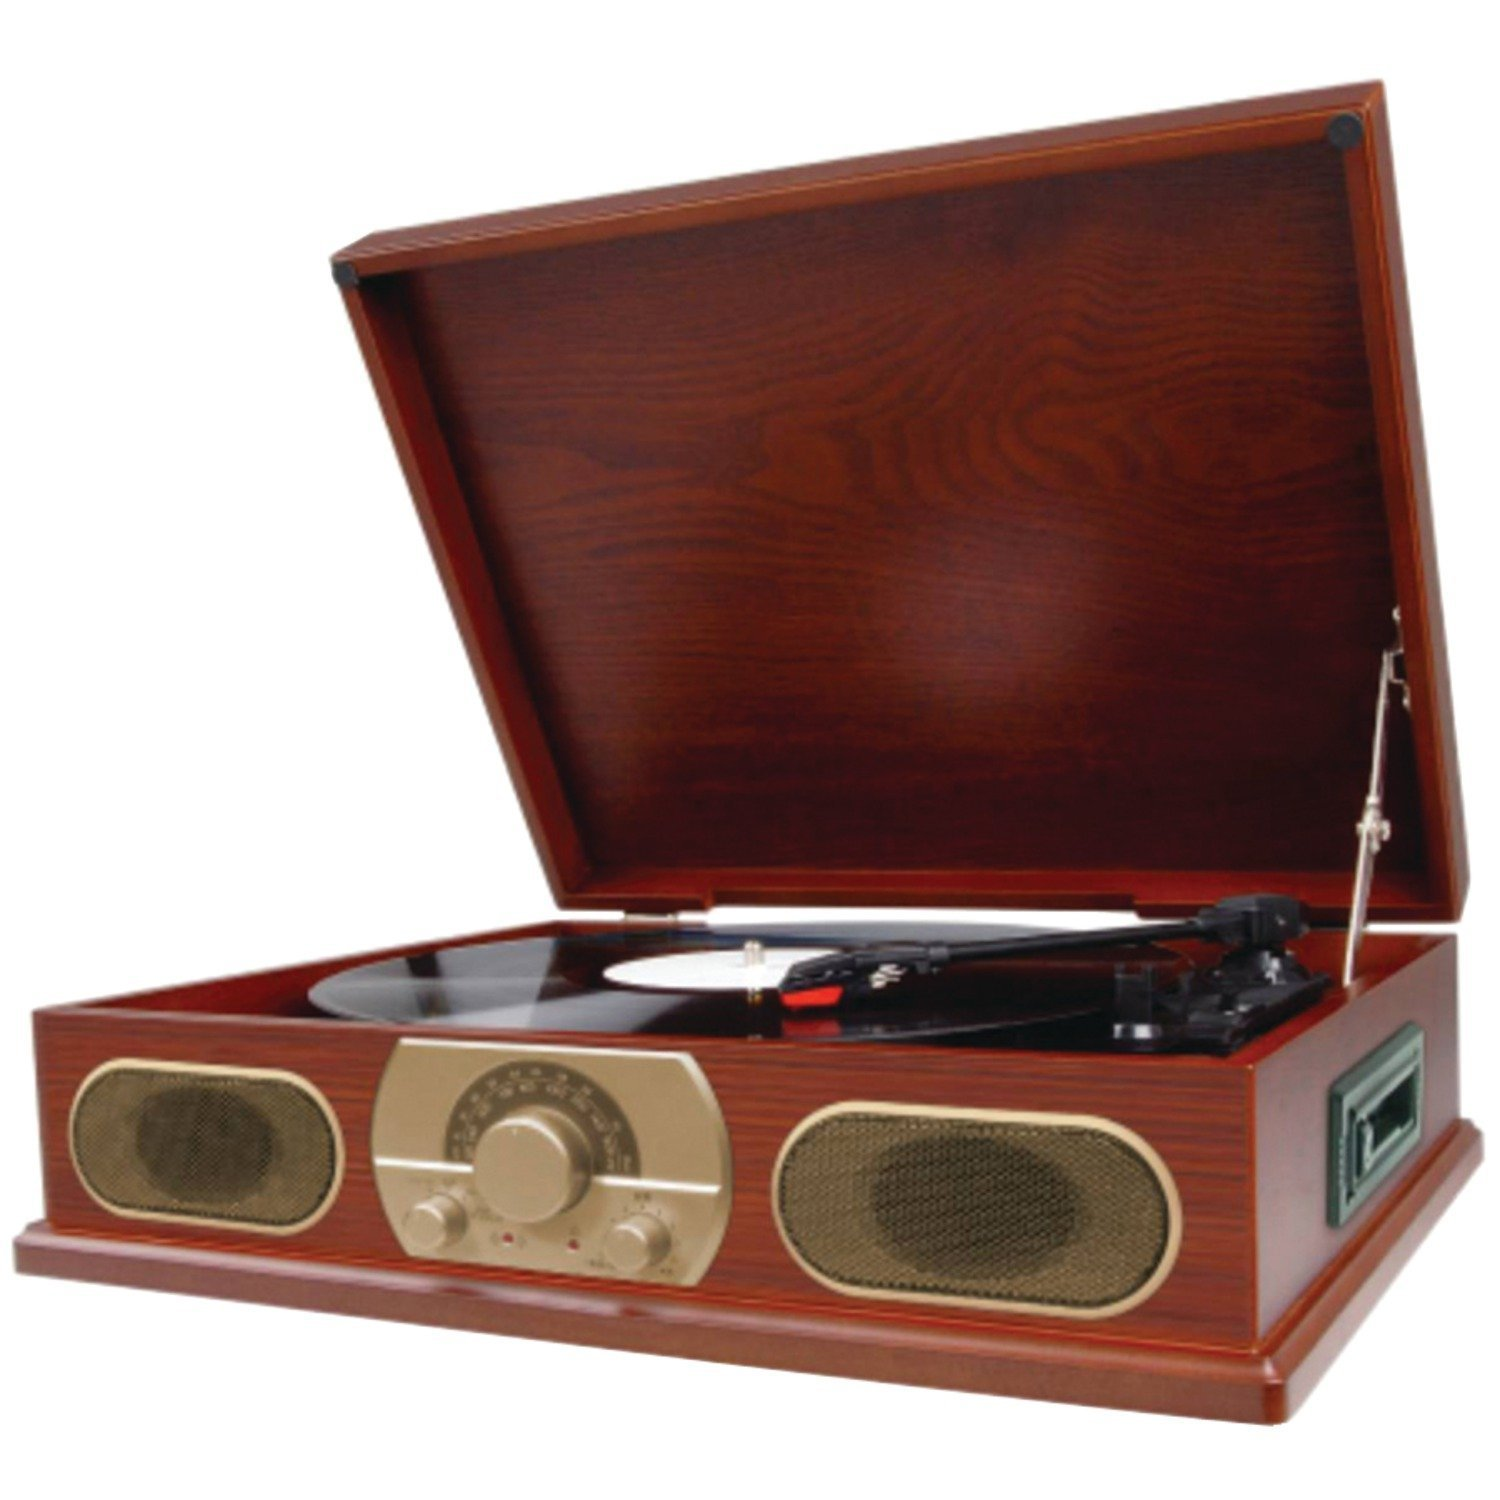 Record Player, Spectra Studebaker Vinyl Retro Small Portable Turntable Player